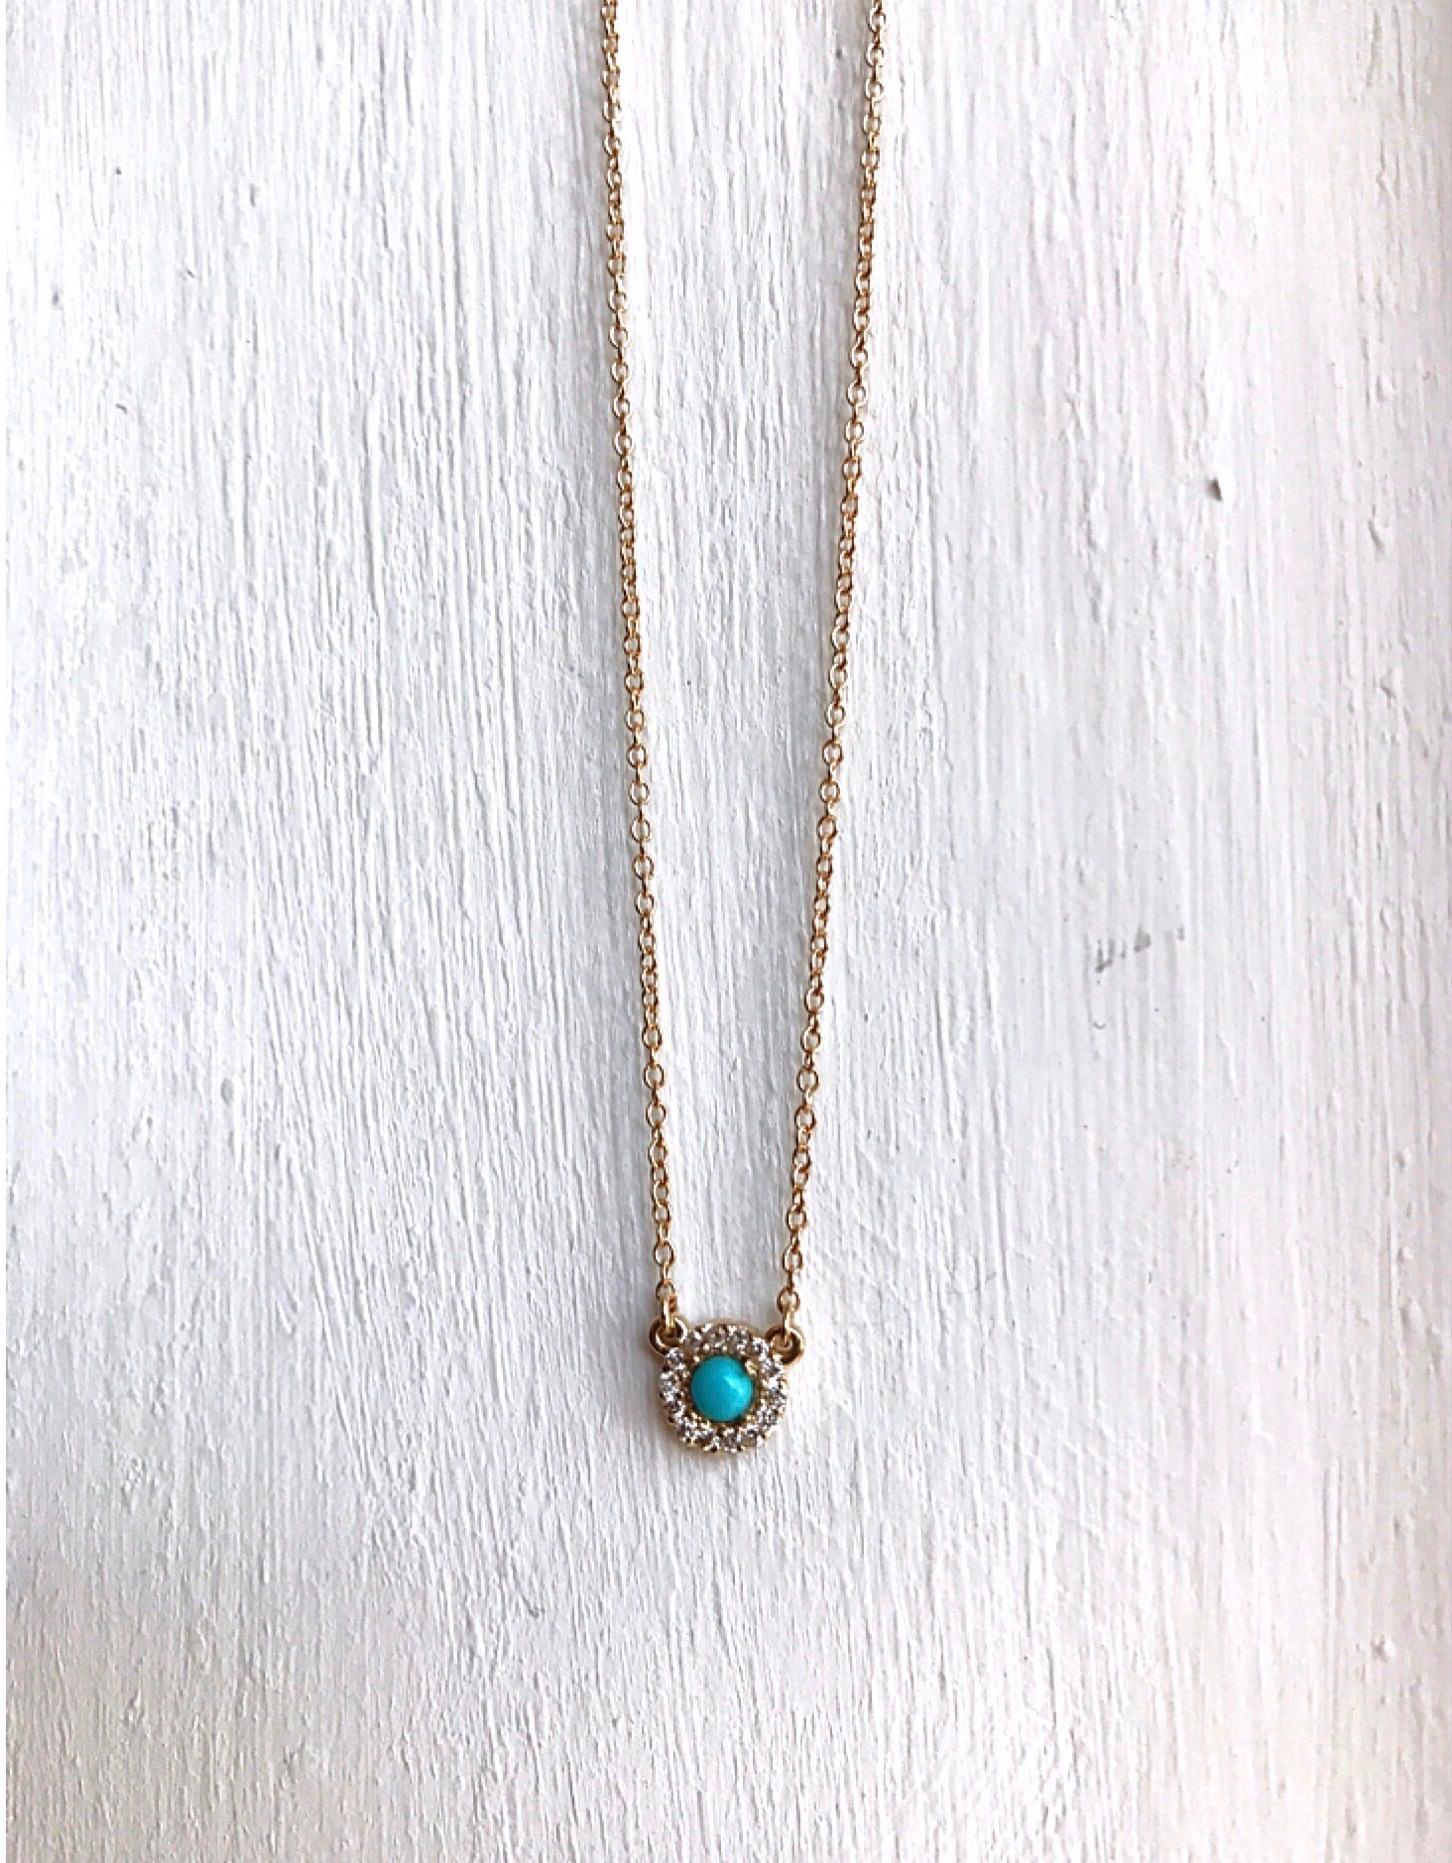 turquoise with diamond halo necklace